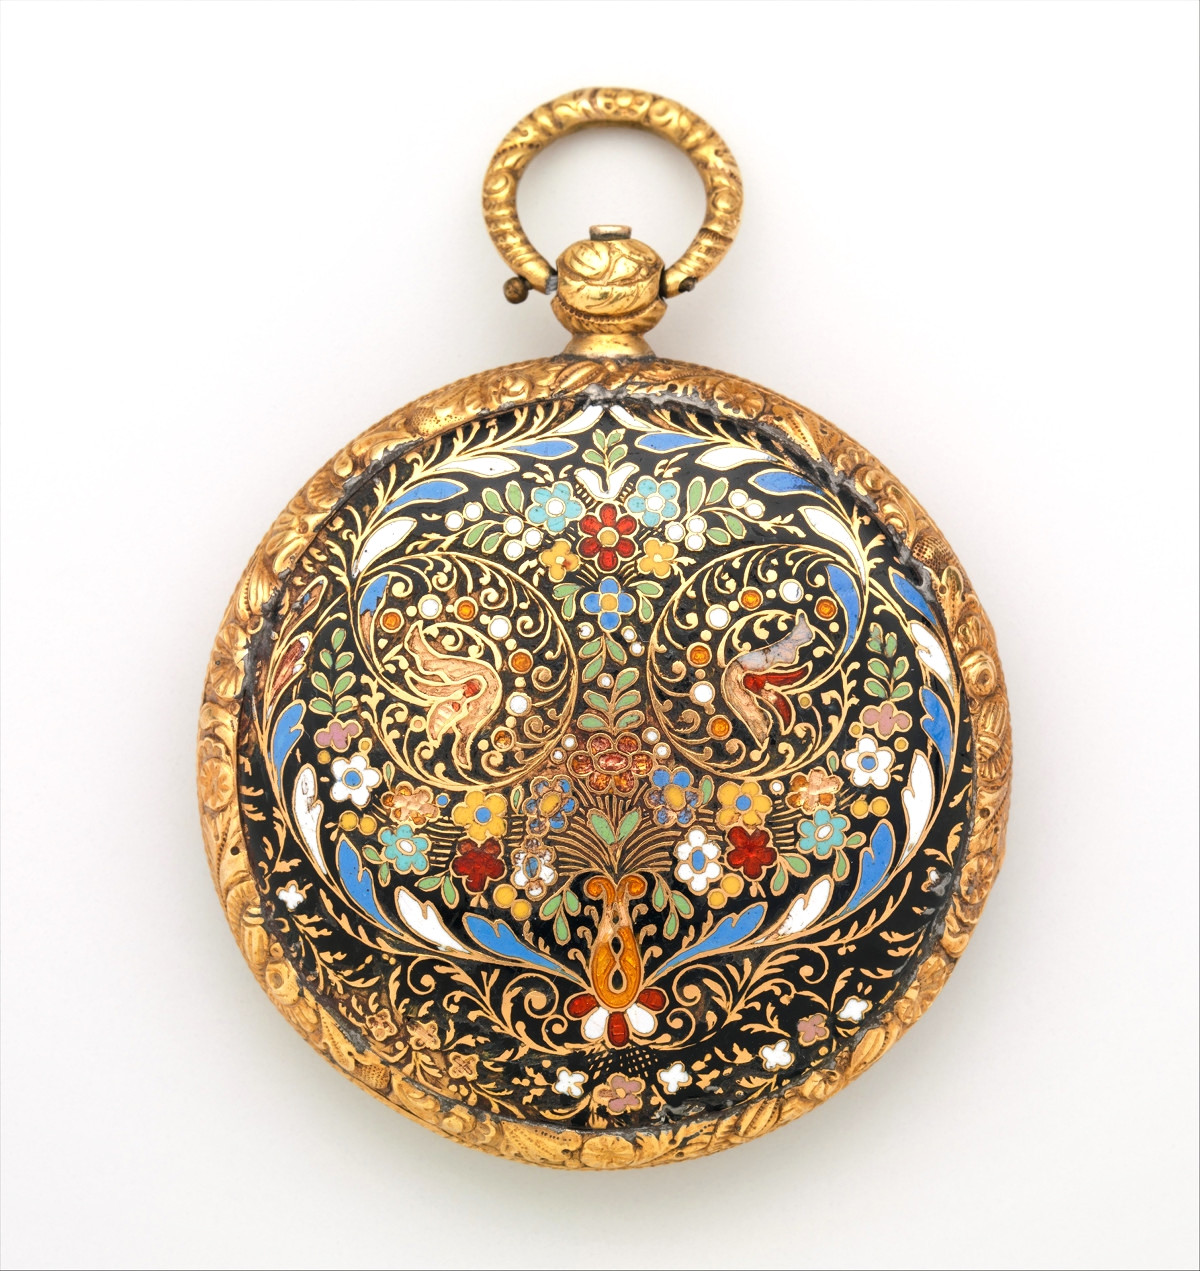 1820. Watch. Swiss, Geneva. Case of gold and enamel, with floral design. metmuseum